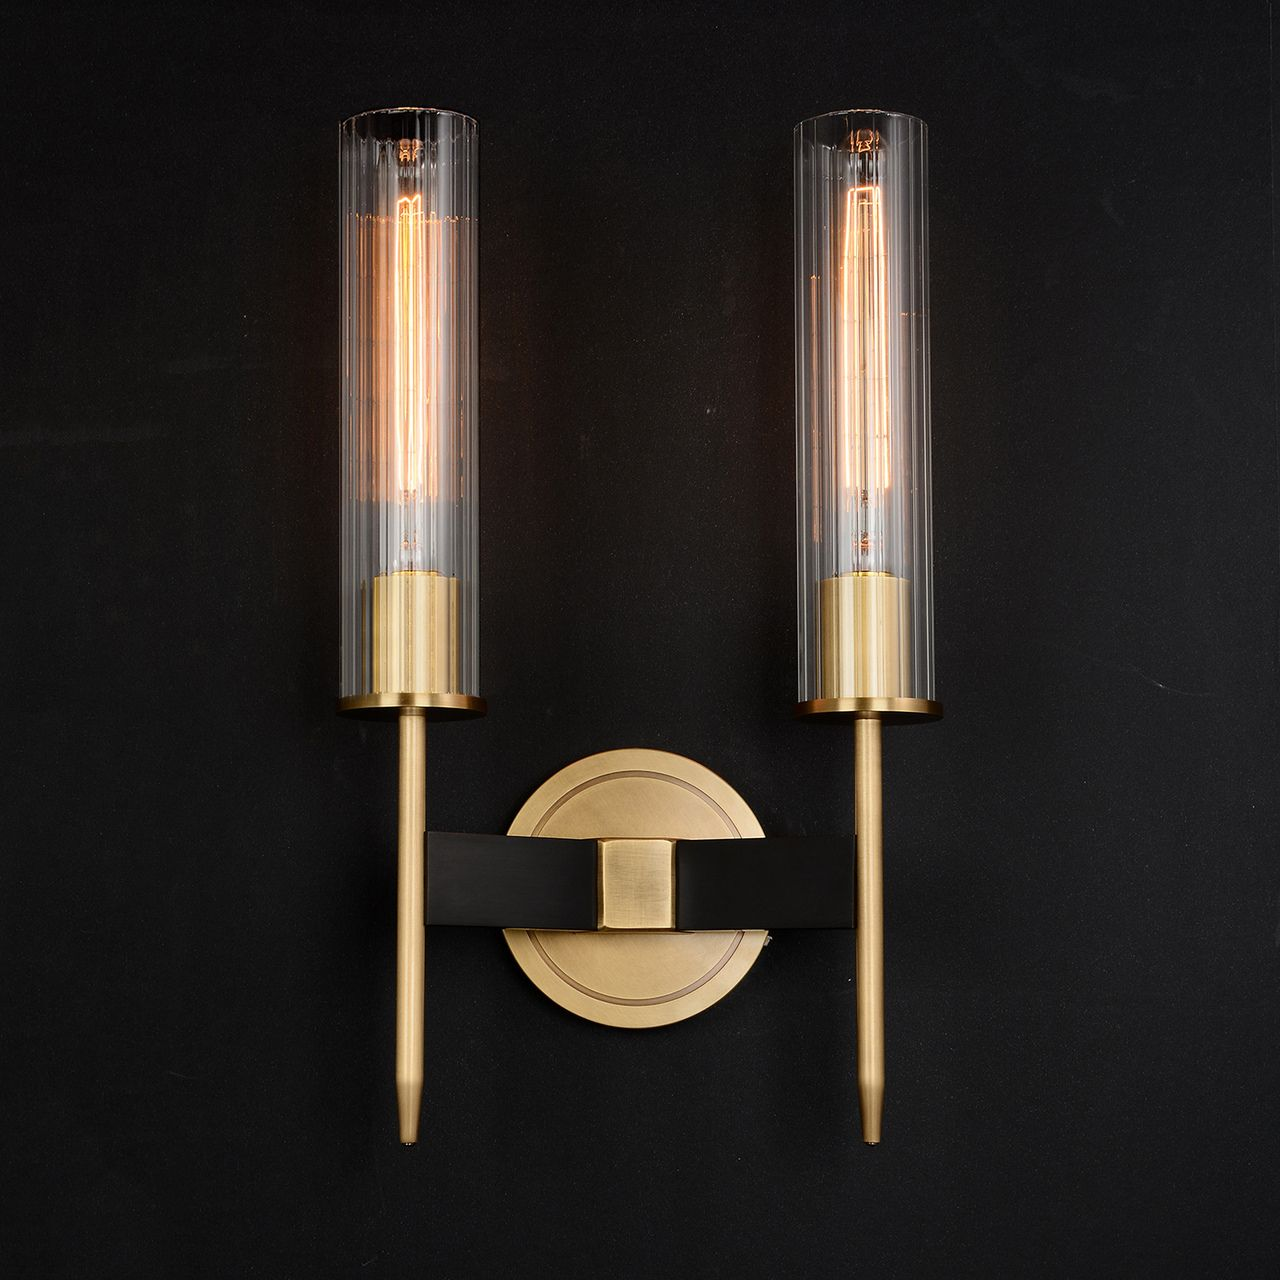 Aicken Double Sconce Brass Sconces Brass Wall Sconce Wall Sconces